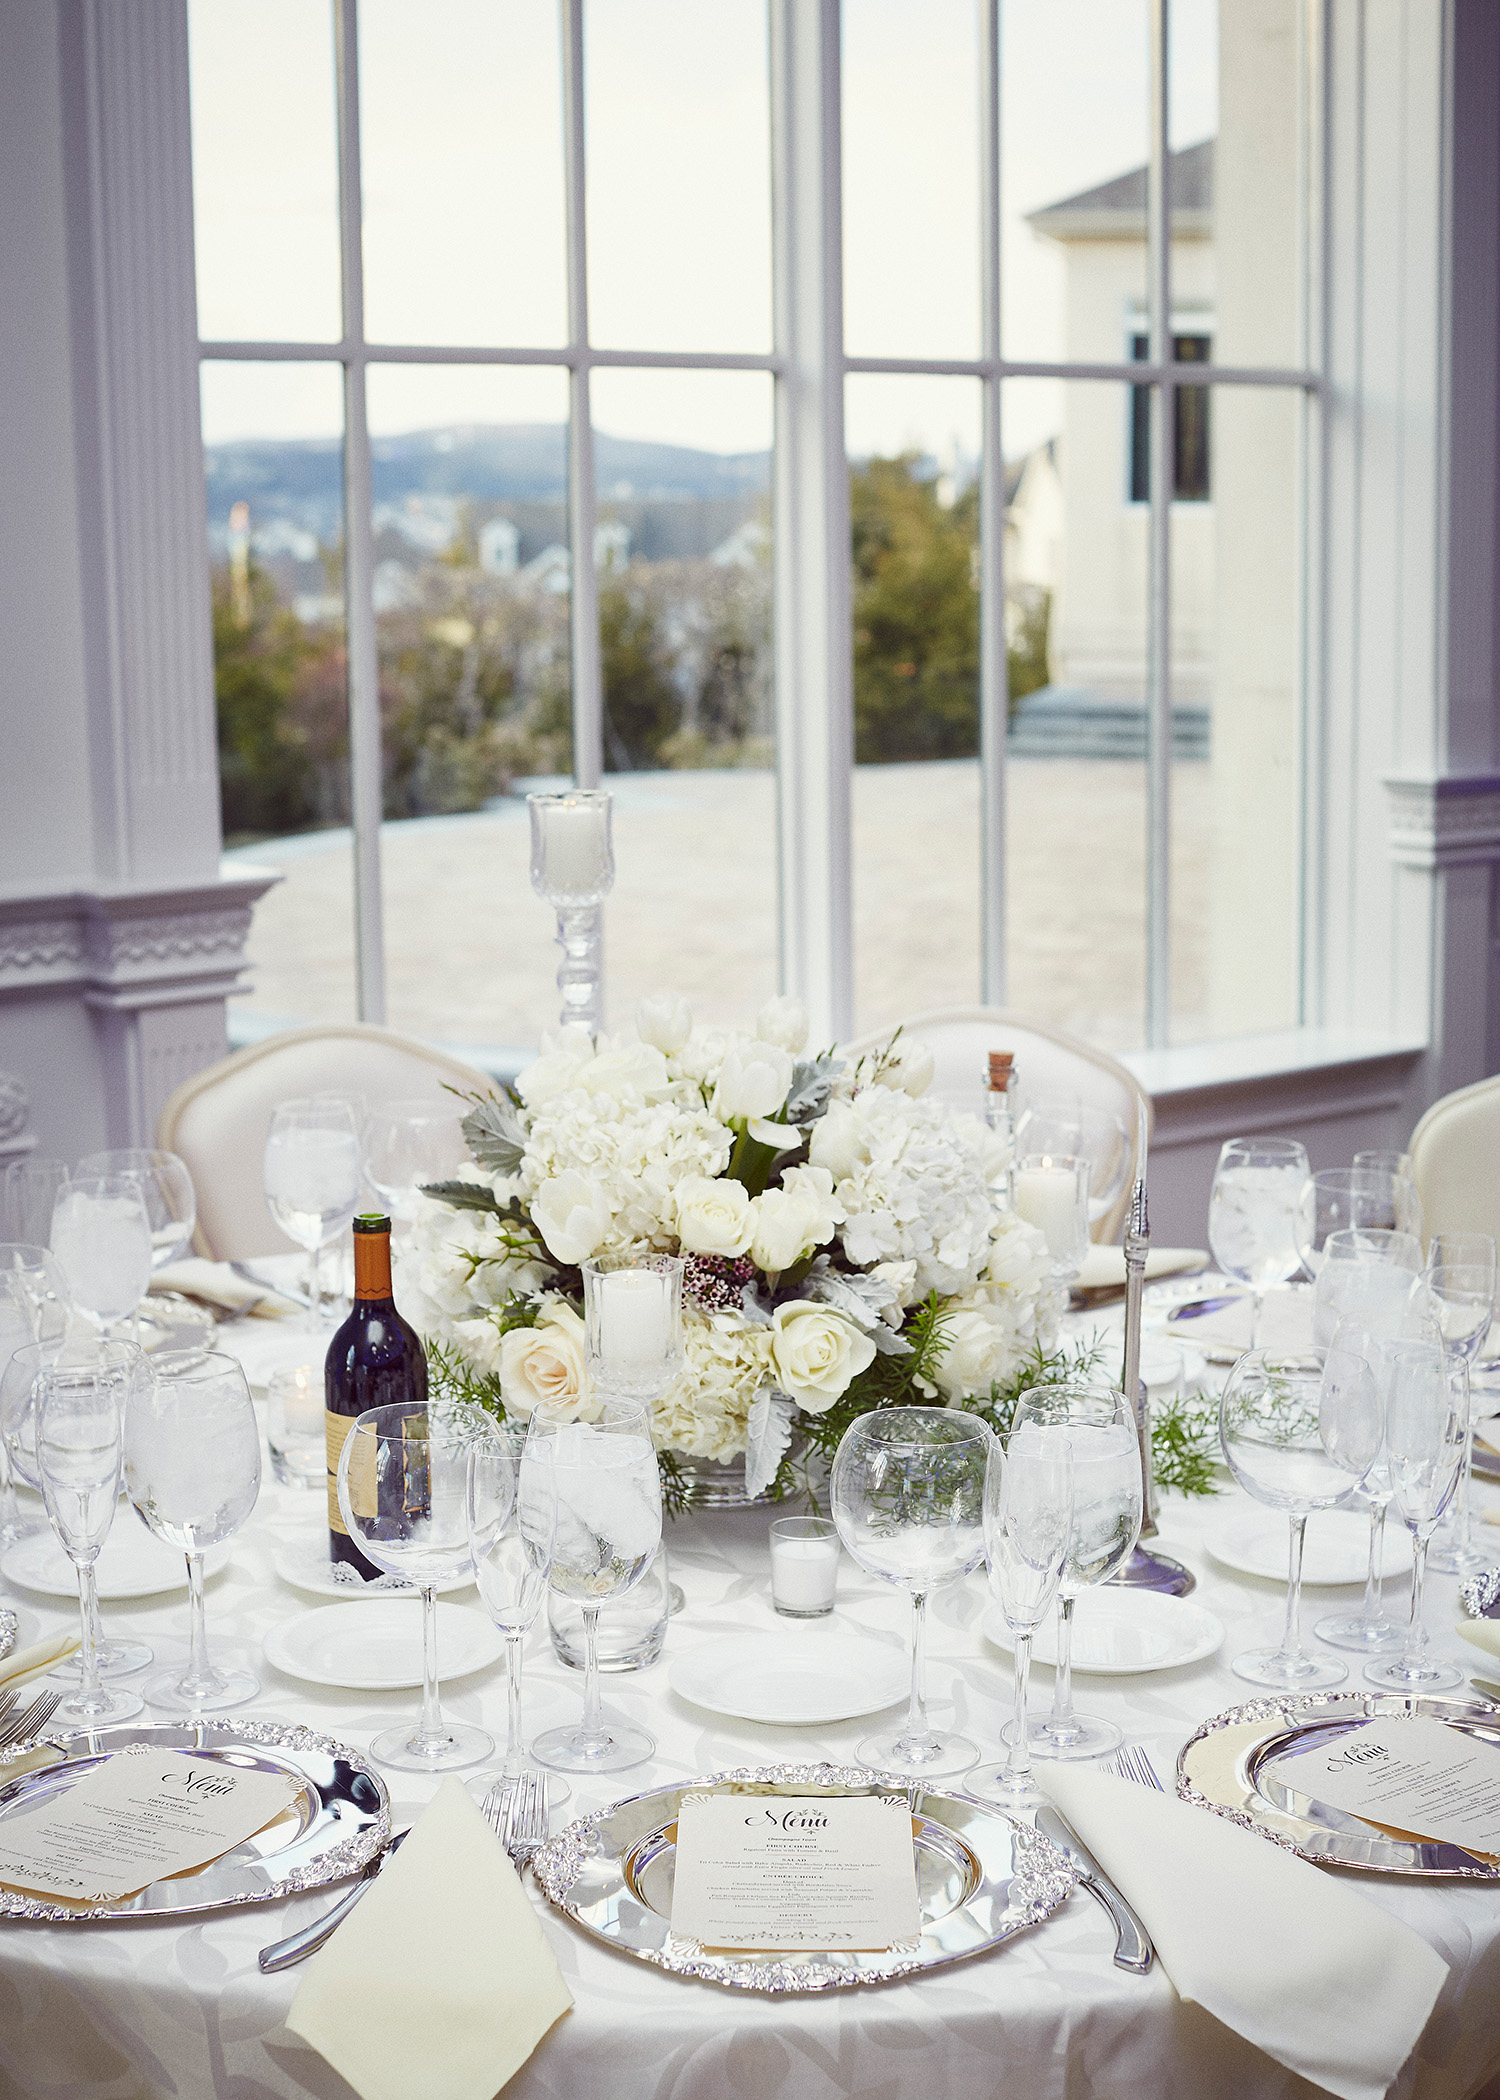 shqipe zenel wedding table centerpiece white